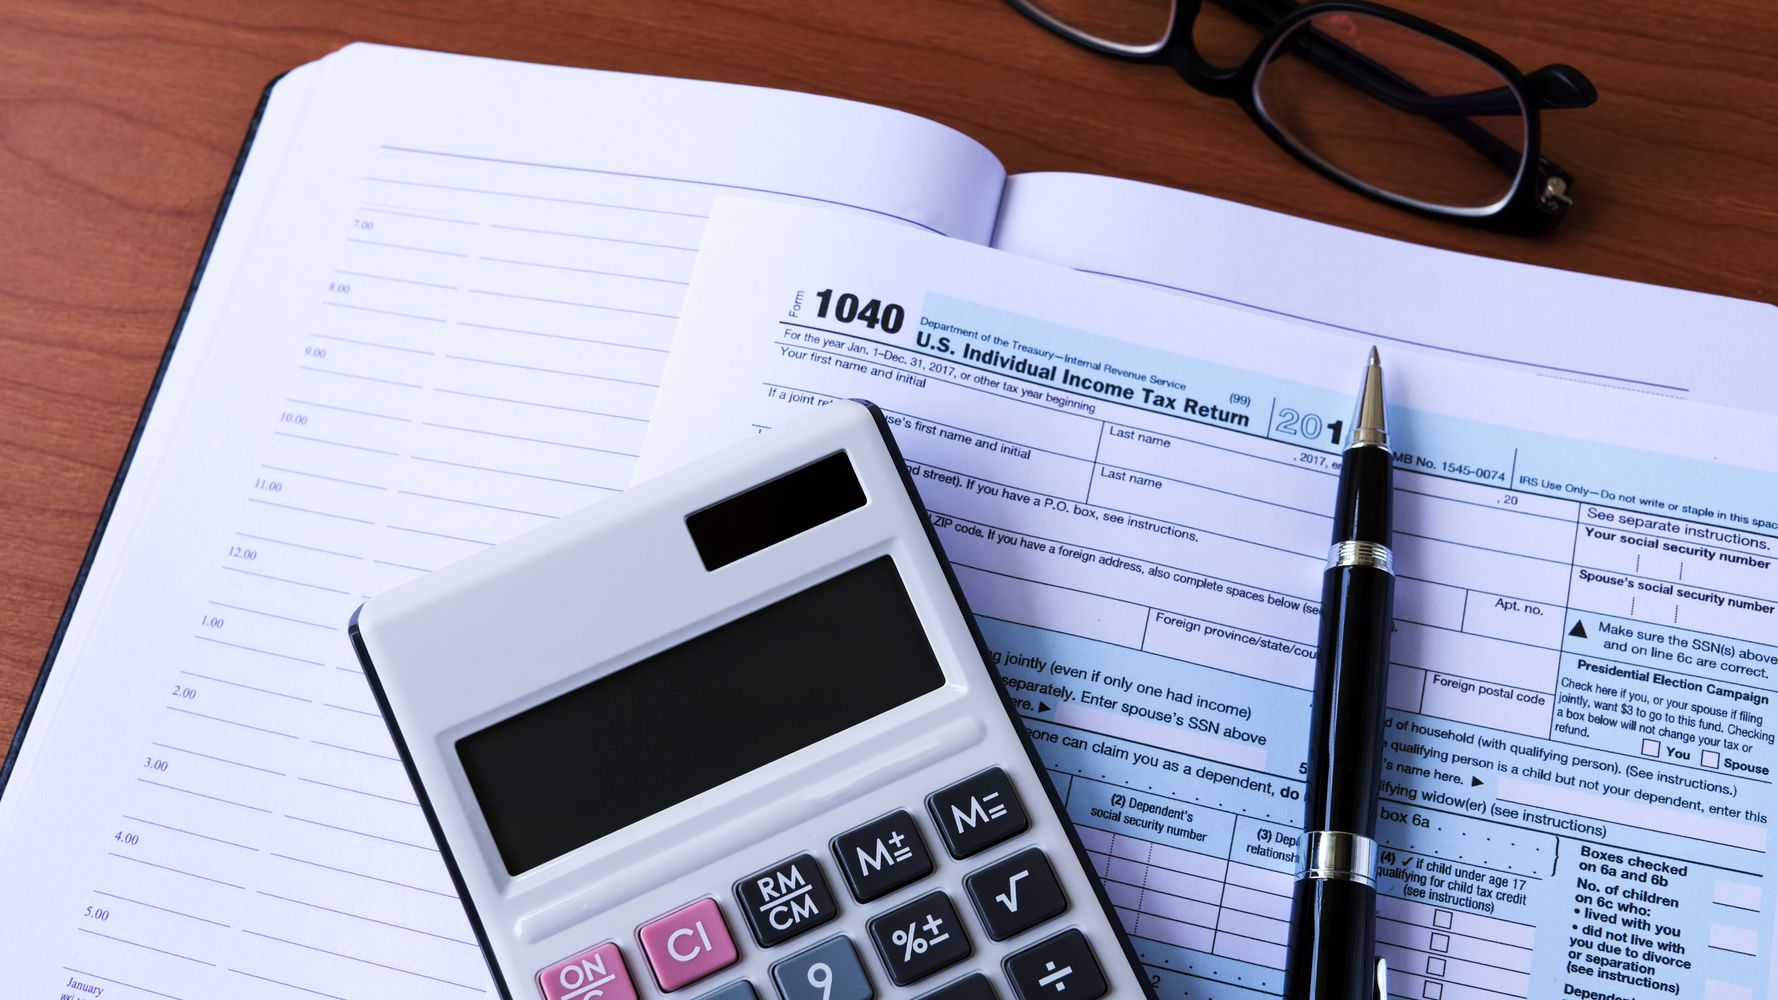 List Of Itemized Deductions 2020.The Irs Just Released New 2020 Tax Brackets Here S What